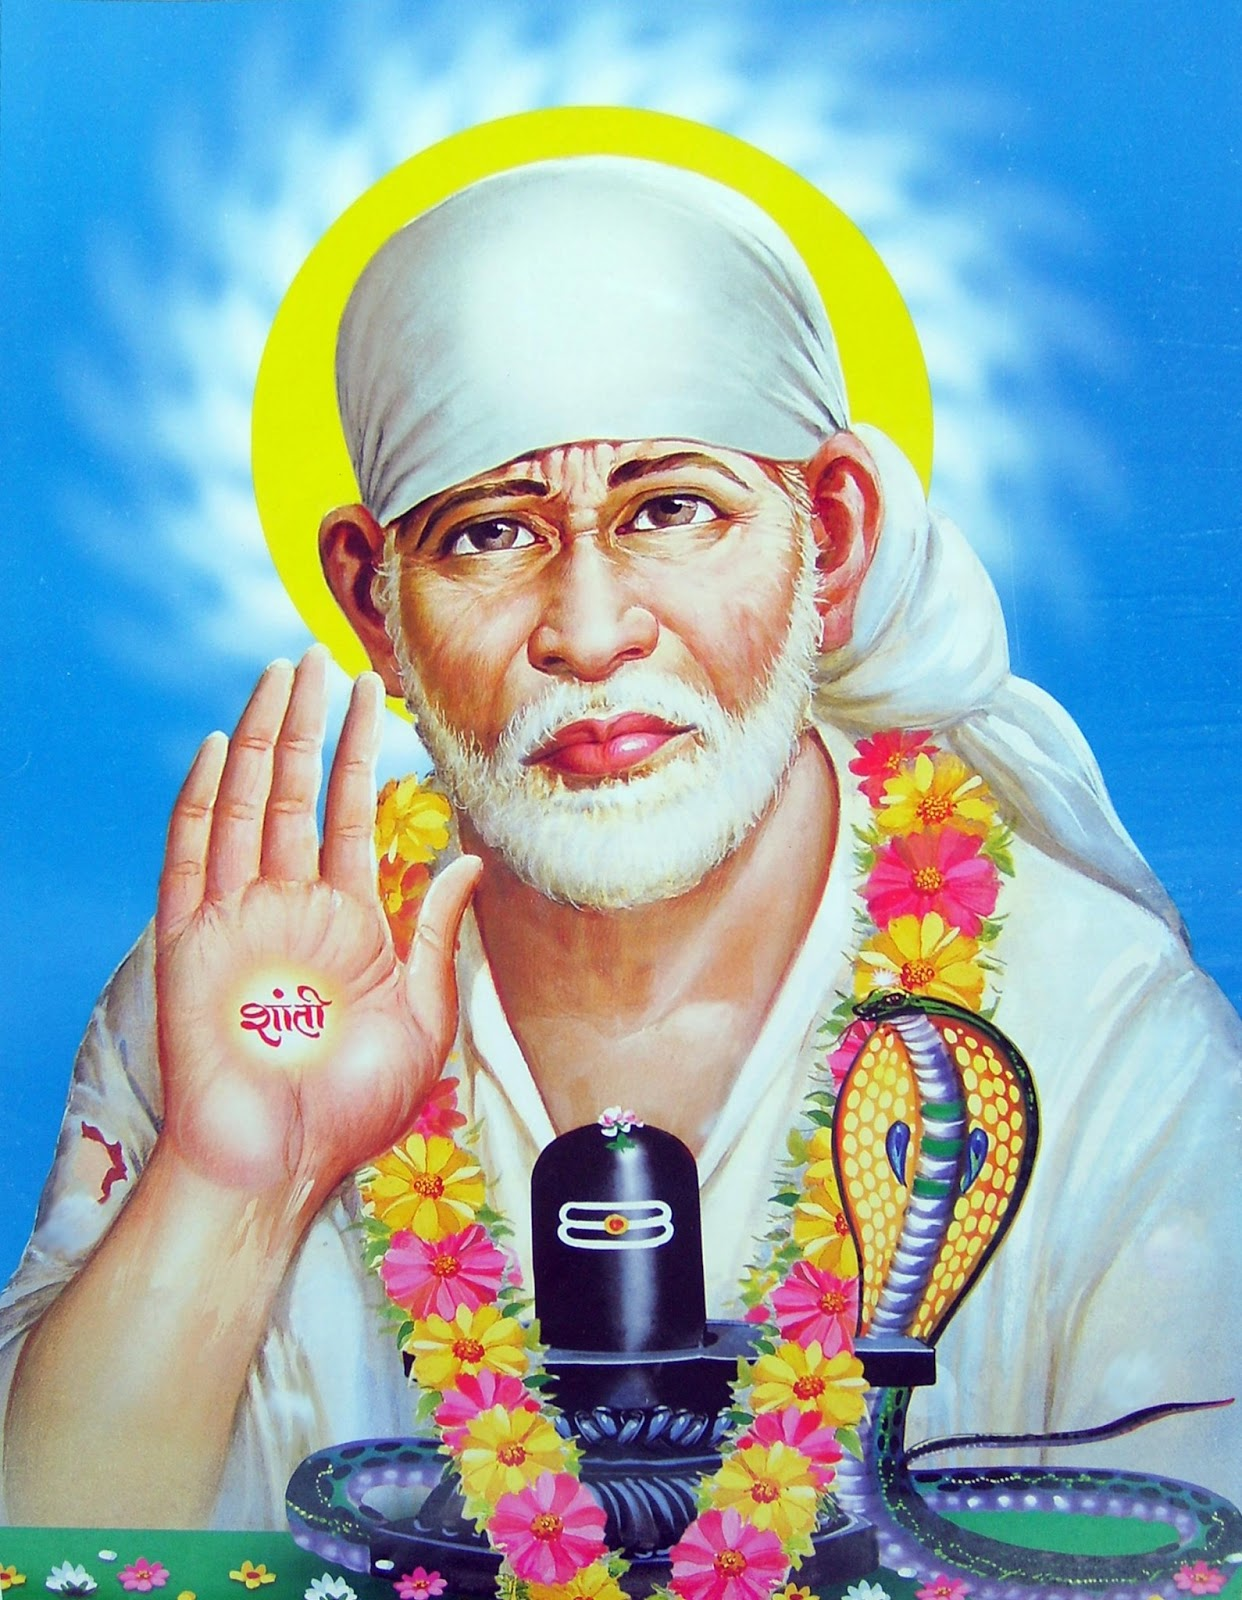 Wonderful Wallpaper Lord Sai Baba - shirdi+sai+bab+hd+wallpaper  Photograph_511434.jpg